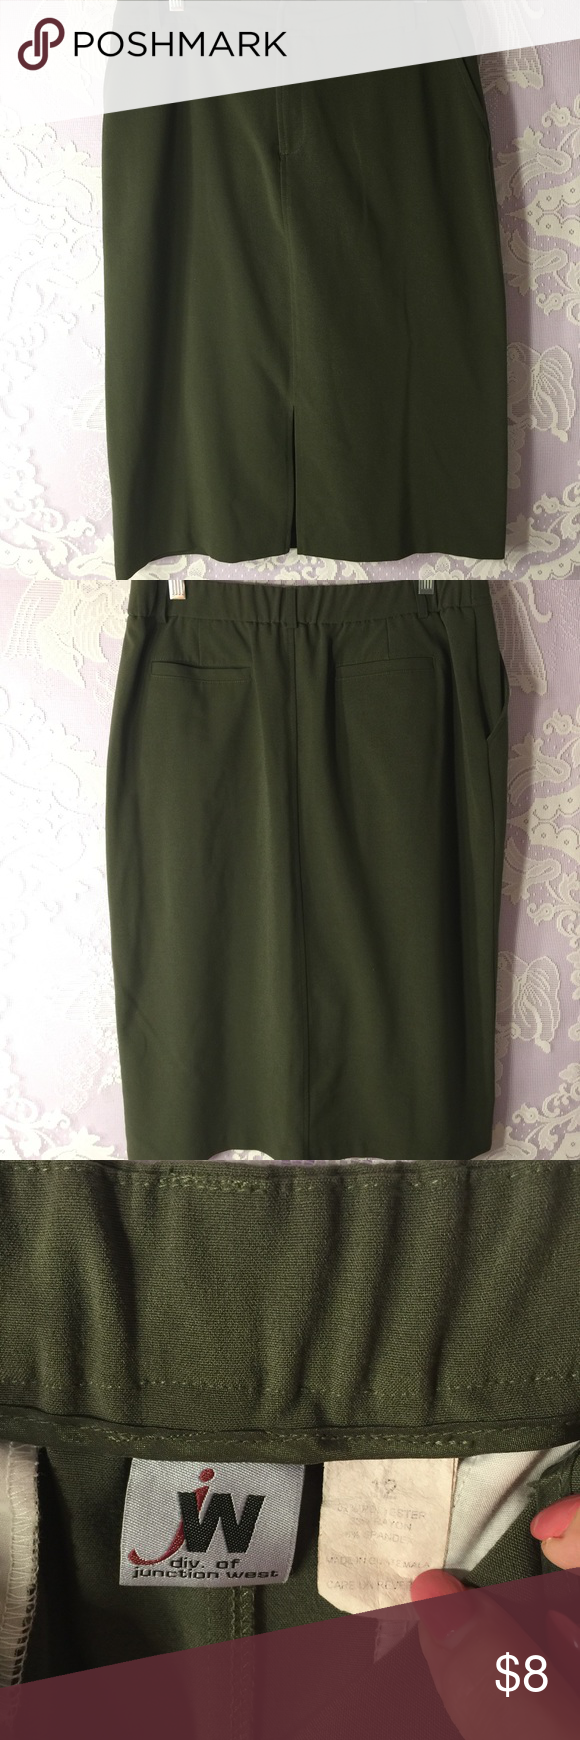 Straight Army Green Skirt with Slit in front Thick durable fabric Skirts